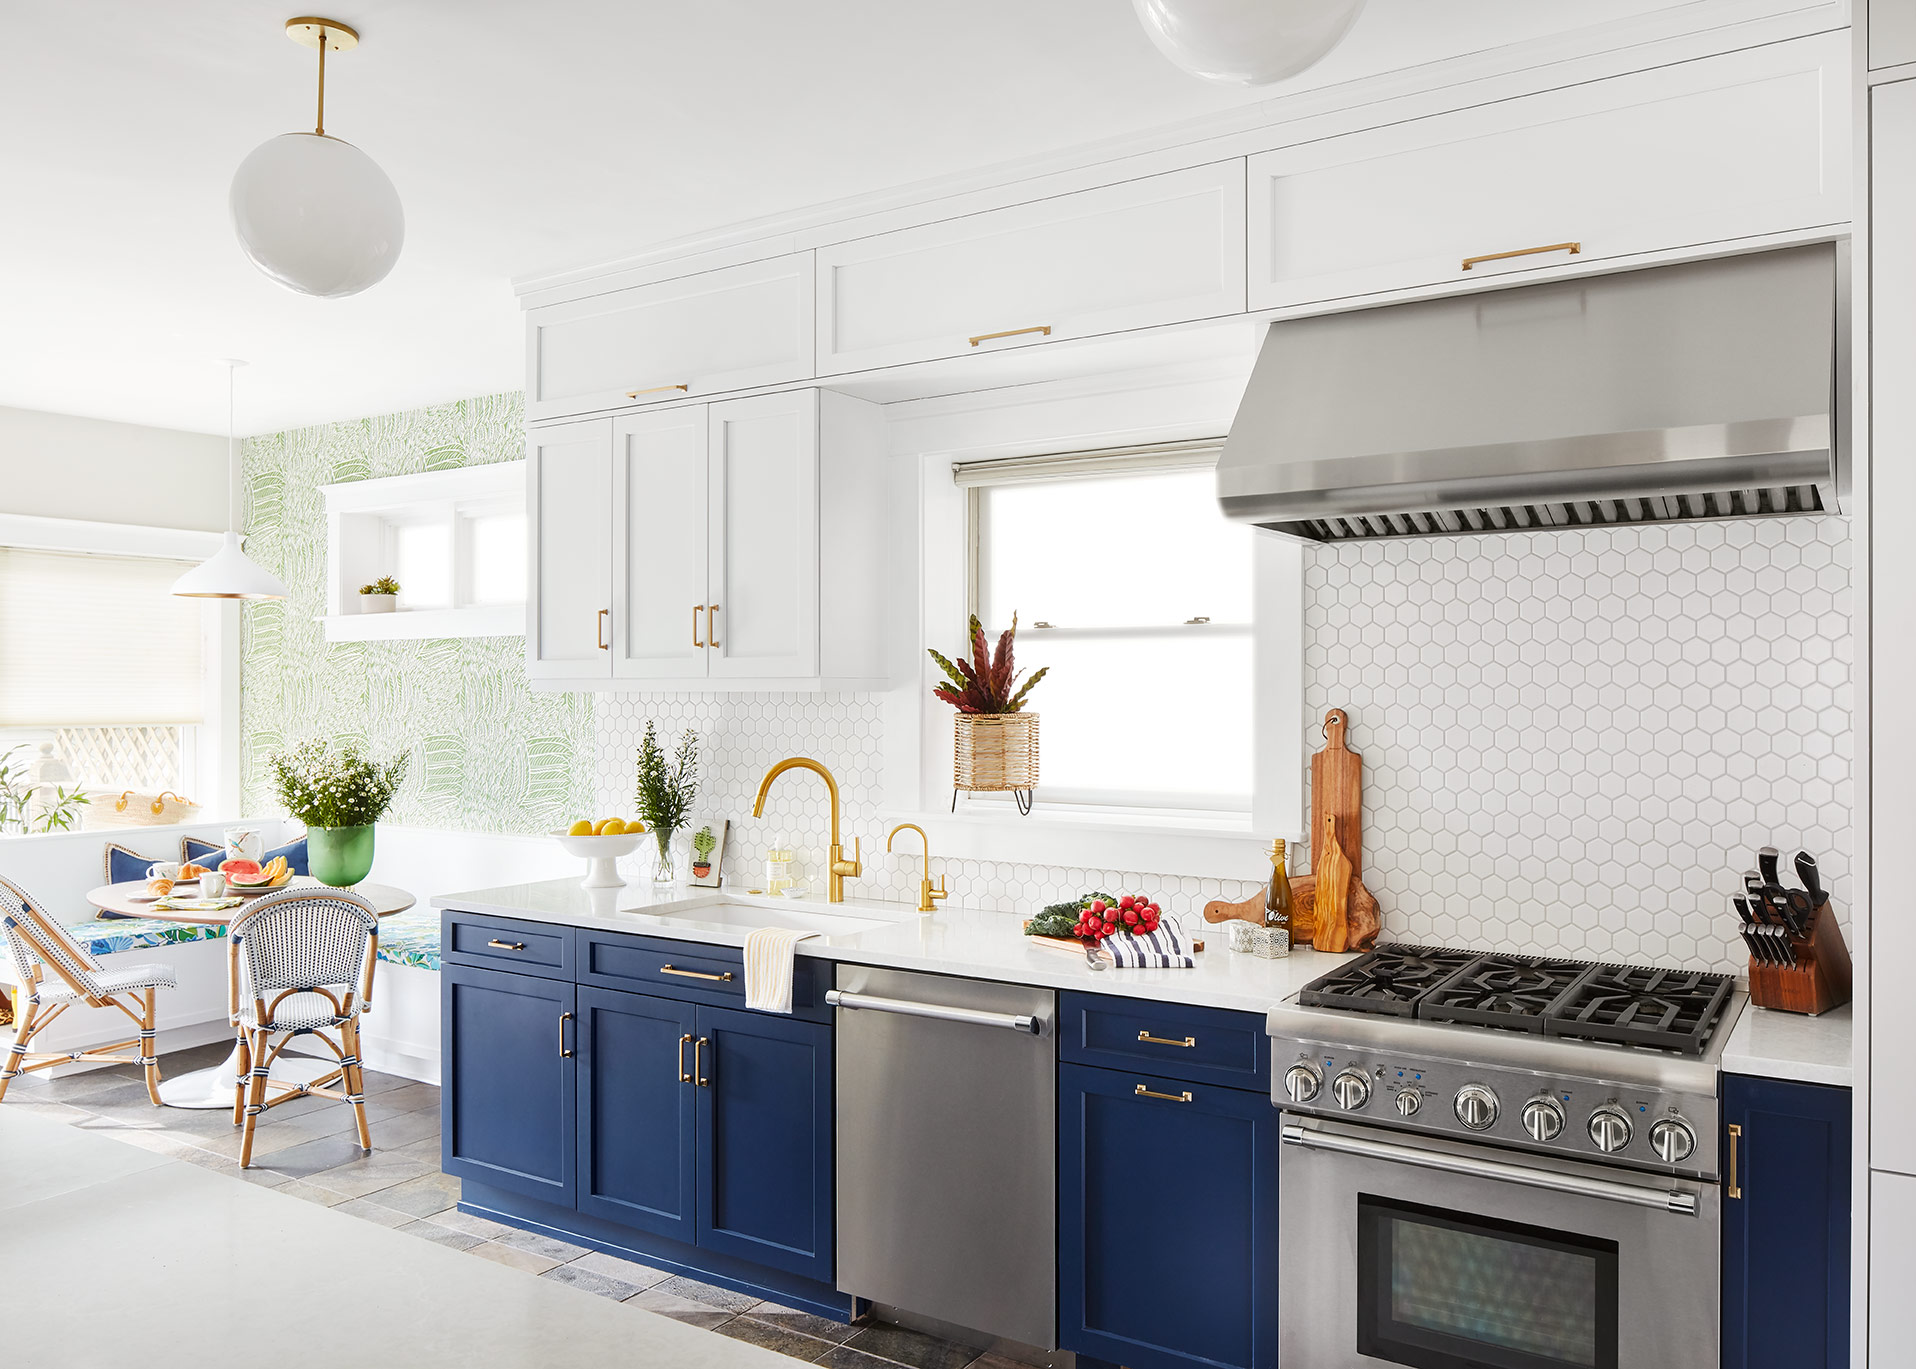 unpatterned-kitchen-interiordesign-brightfreshfirstfloor.jpg